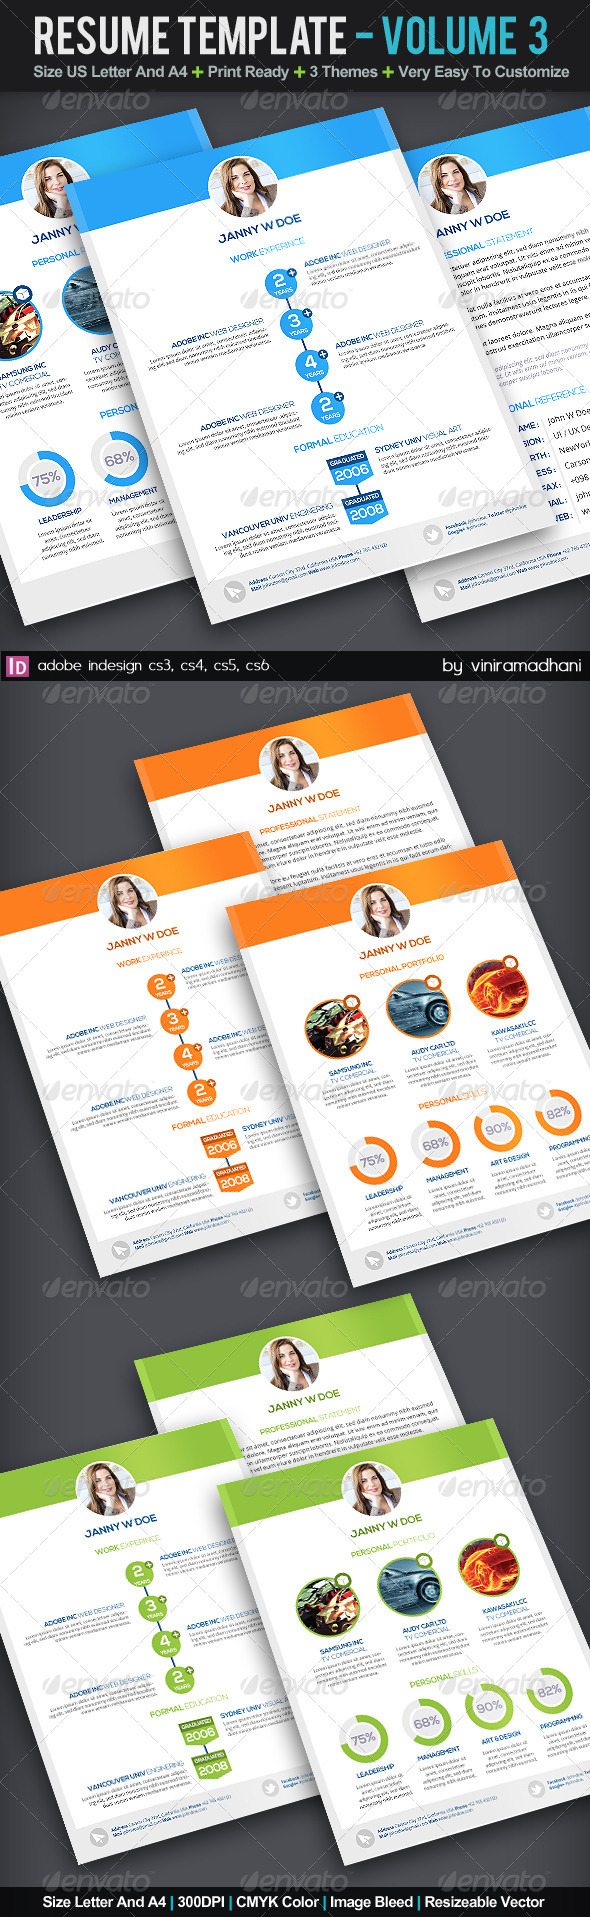 GraphicRiver Resume Template Volume 3 5941269